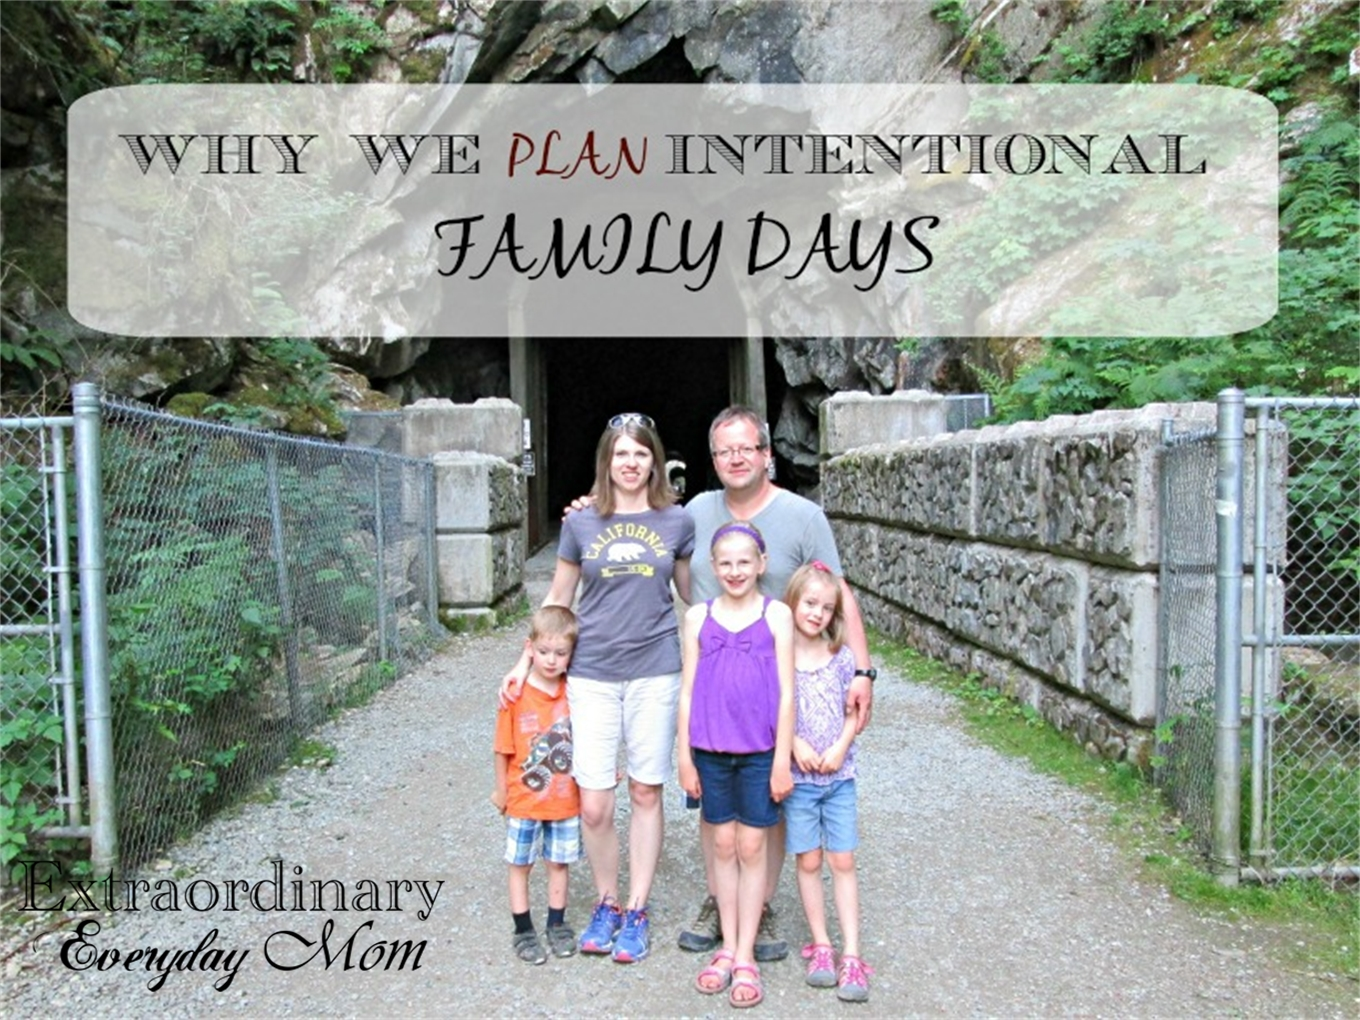 Why We Plan Intentional Family Days